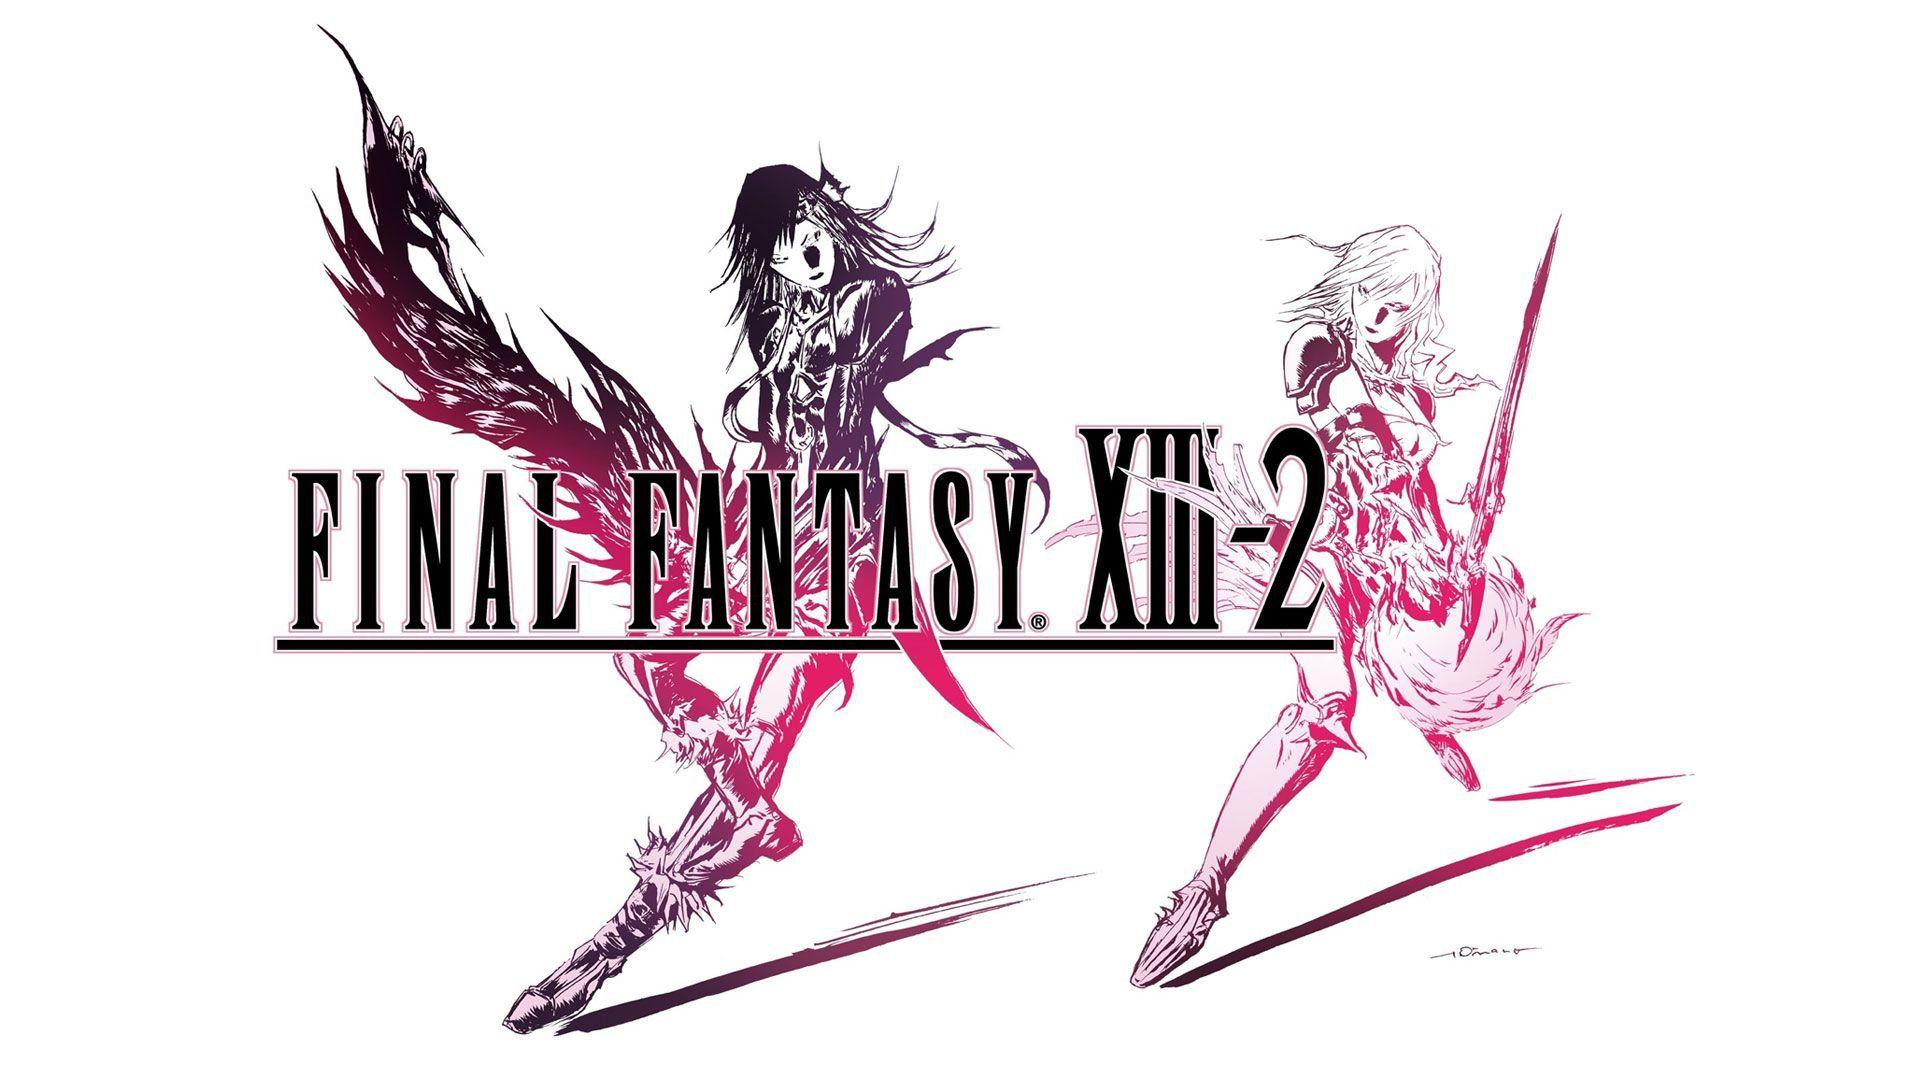 Final Fantasy Xiii Wallpapers Hd 1080p